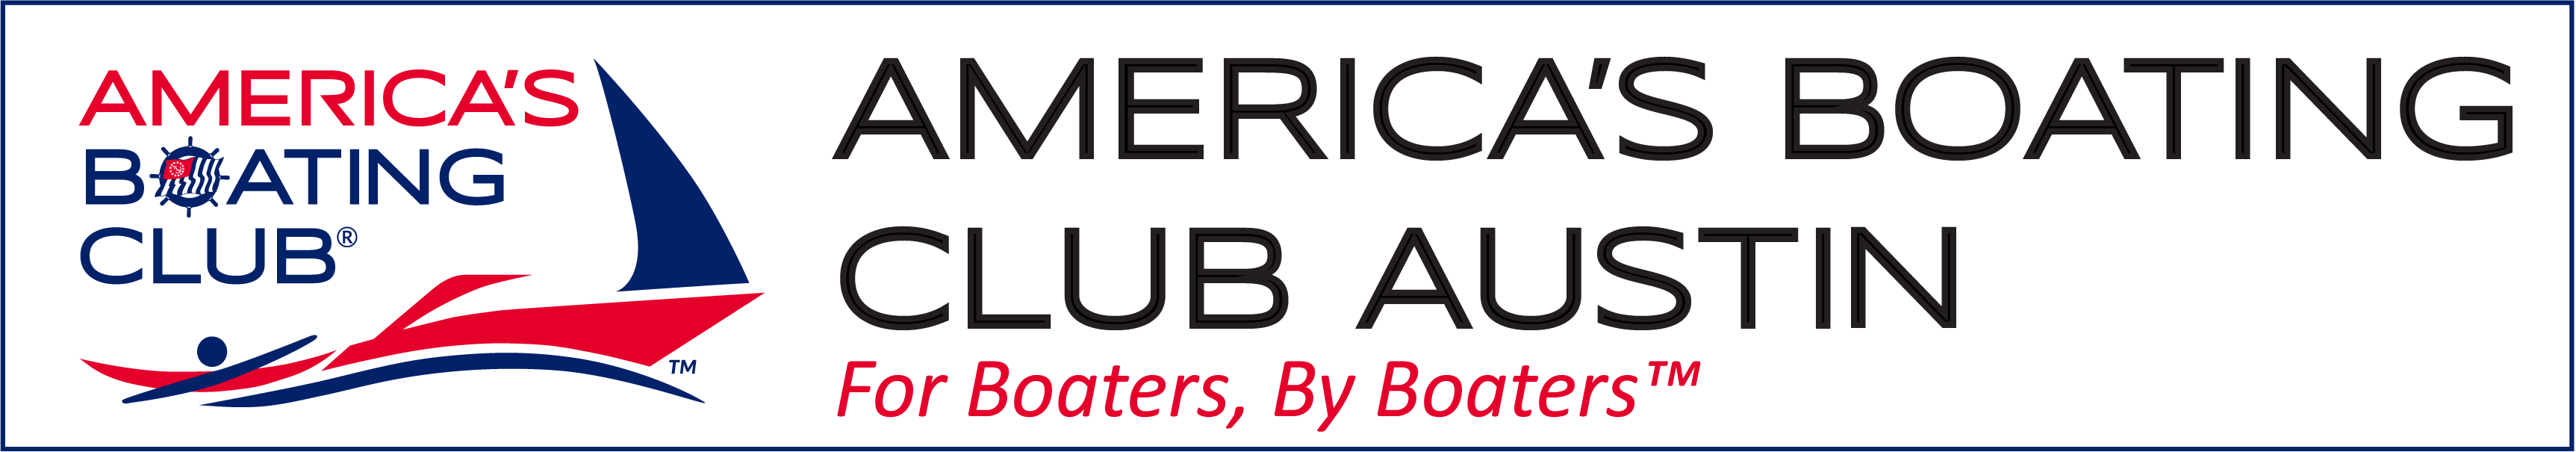 America's Boating Club Austin